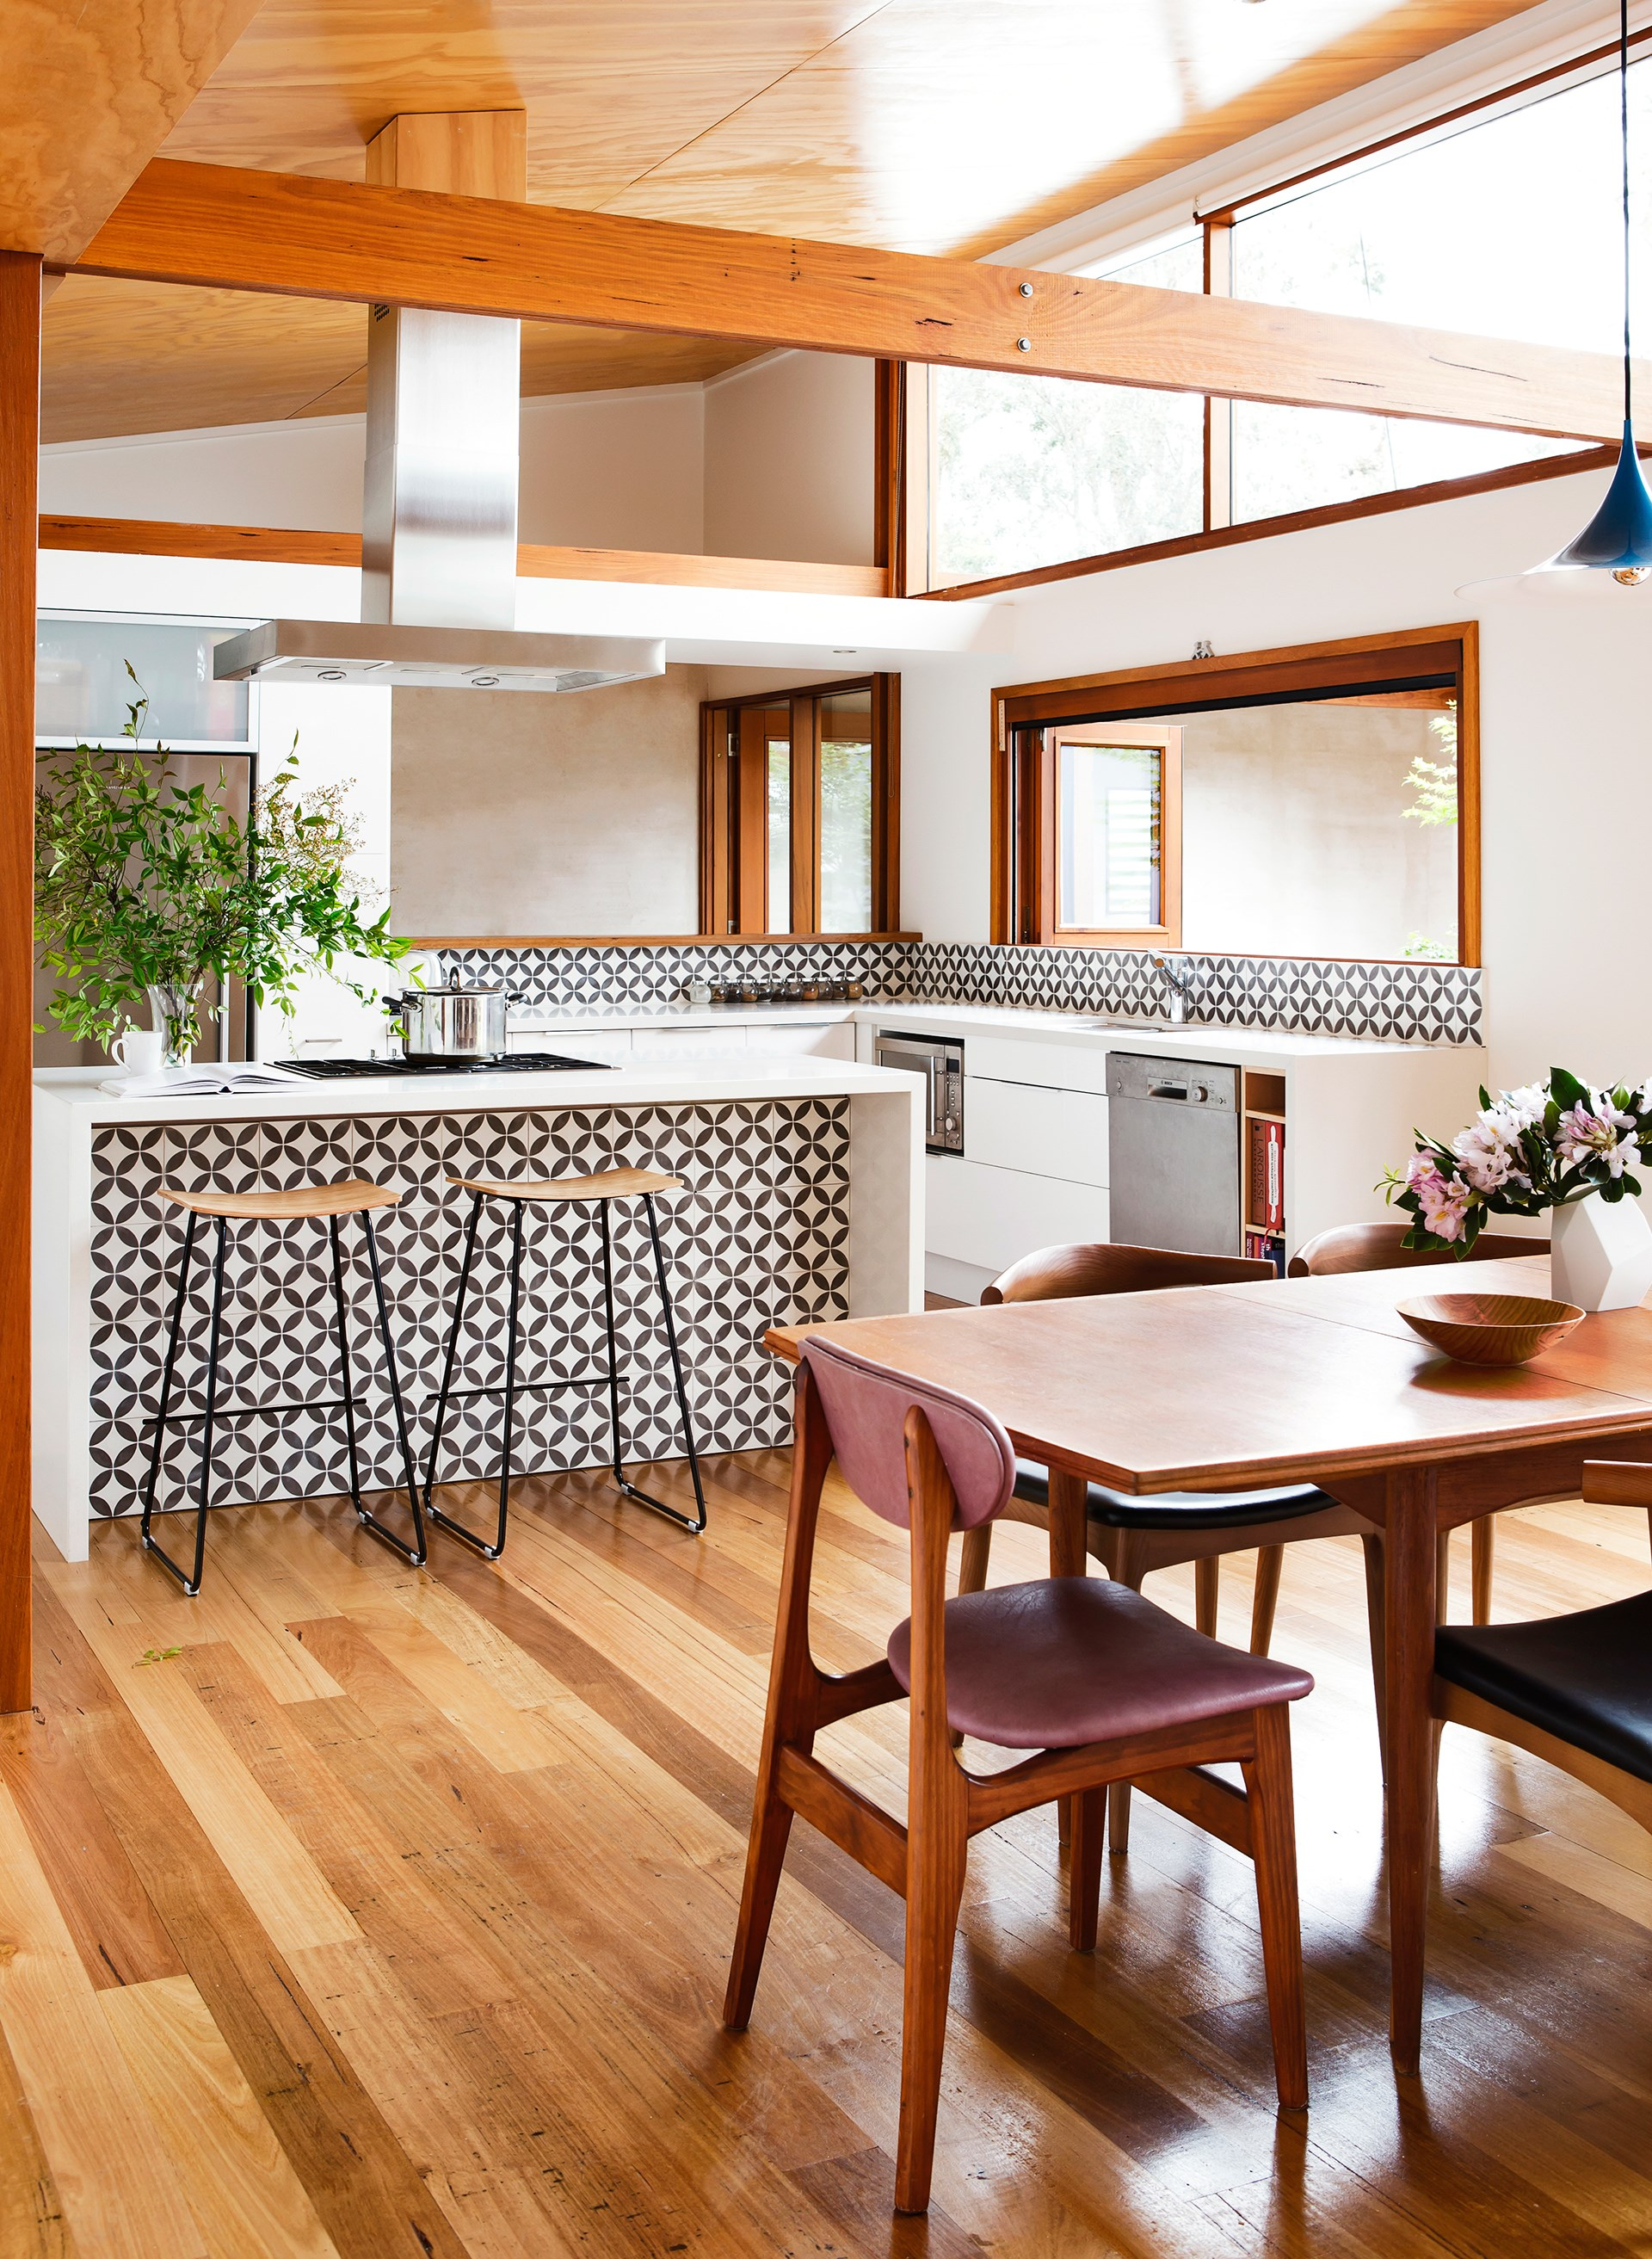 Patterned tiles create graphic interest in the kitchen of this otherwise [earthy coastal sanctuary](http://www.homestolove.com.au/contemporary-coastal-home-provides-the-ultimate-sanctuary-2794). *Photo: Maree Homer*